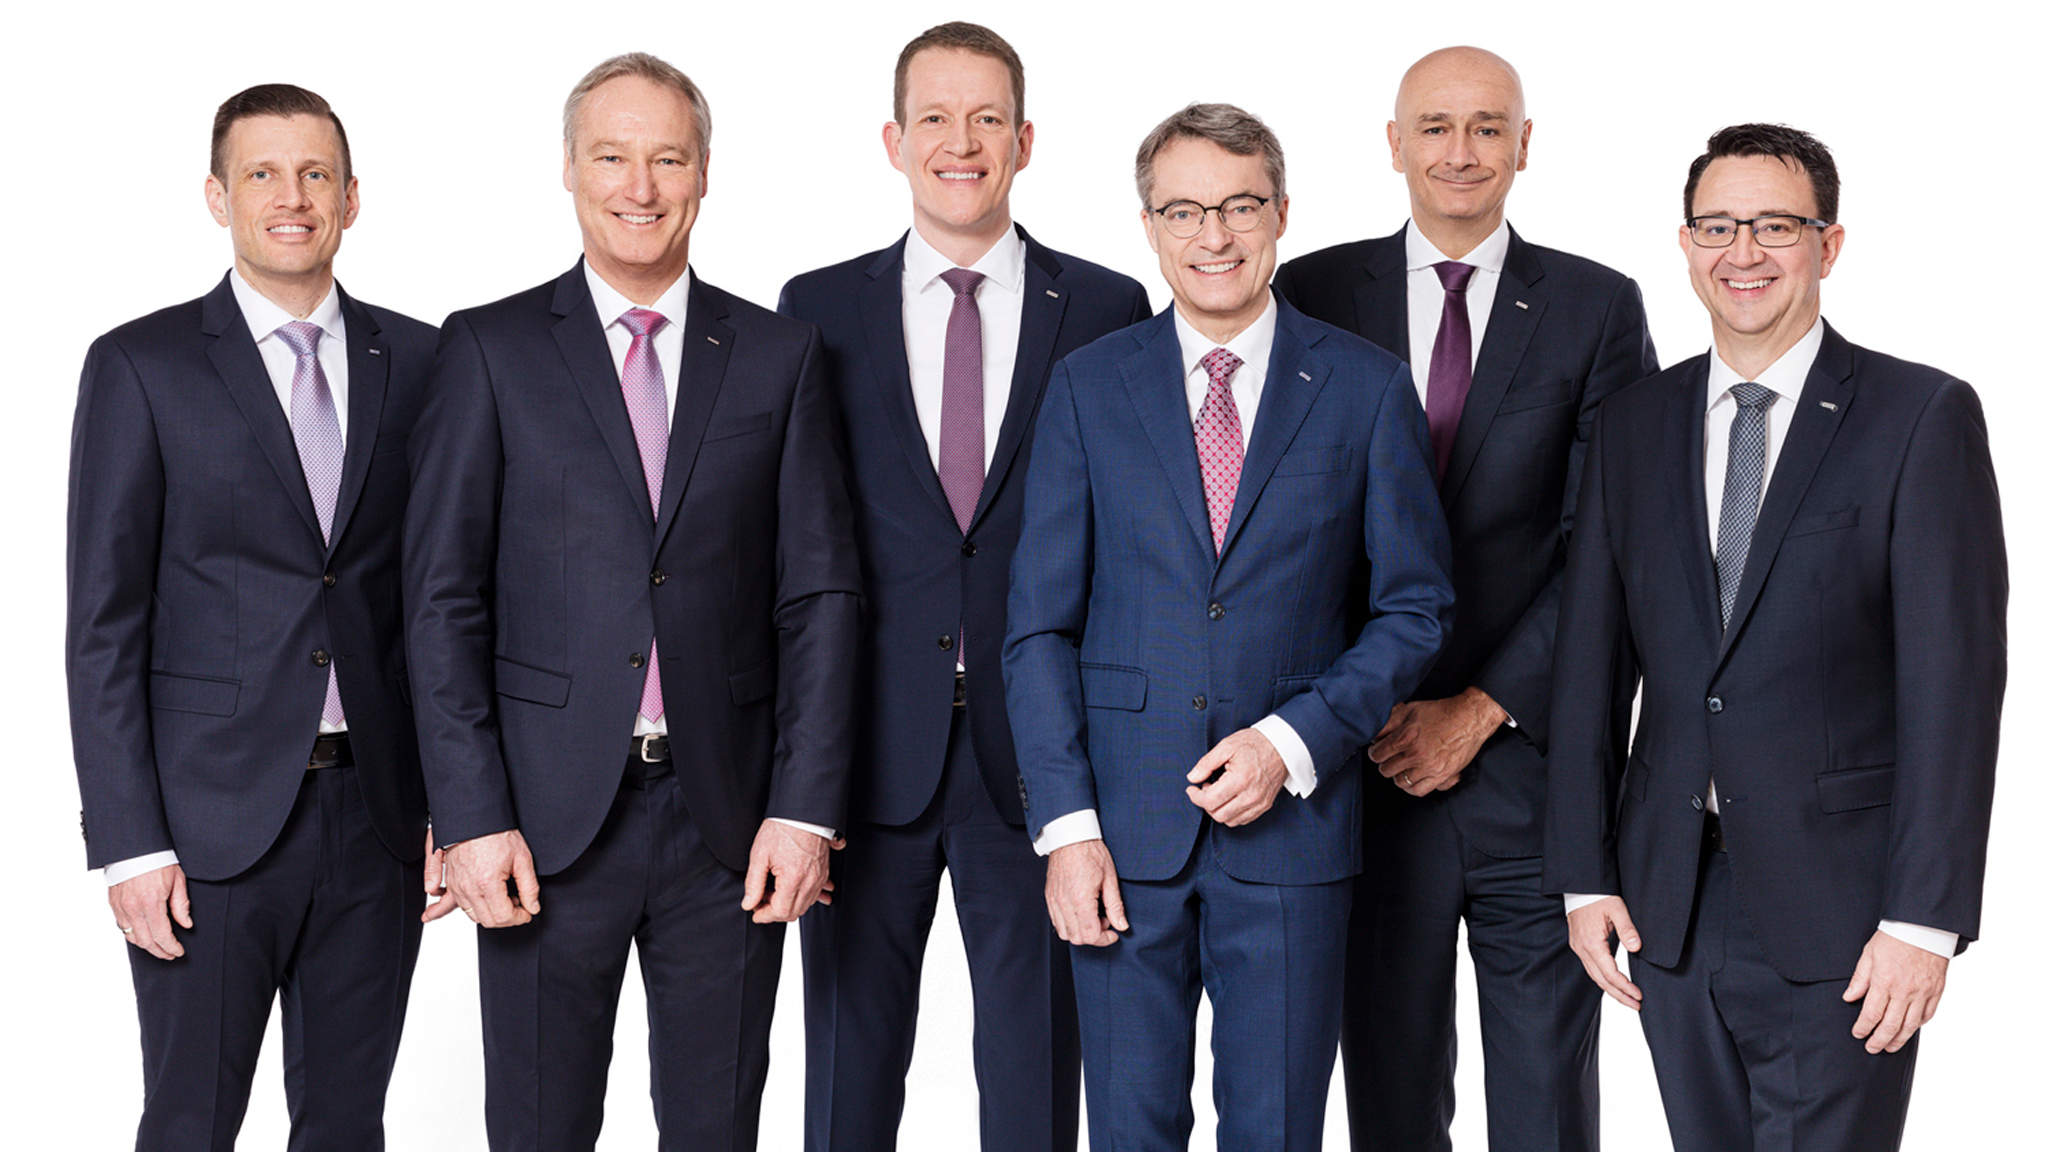 v.l.n.r: Alexander Tonn, Managing Director European Logistics Germany (ab 1.1.2021 COO Road Logistics), Michael Schilling, COO Road Logistics; Burkhard Eling, CFO (ab 1.1.2021 CEO); Bernhard Simon, CEO; Edoardo Podestà, COO Air & Sea Logistics; Stefan Hohm, Corporate Director Corporate Solutions, Research & Development